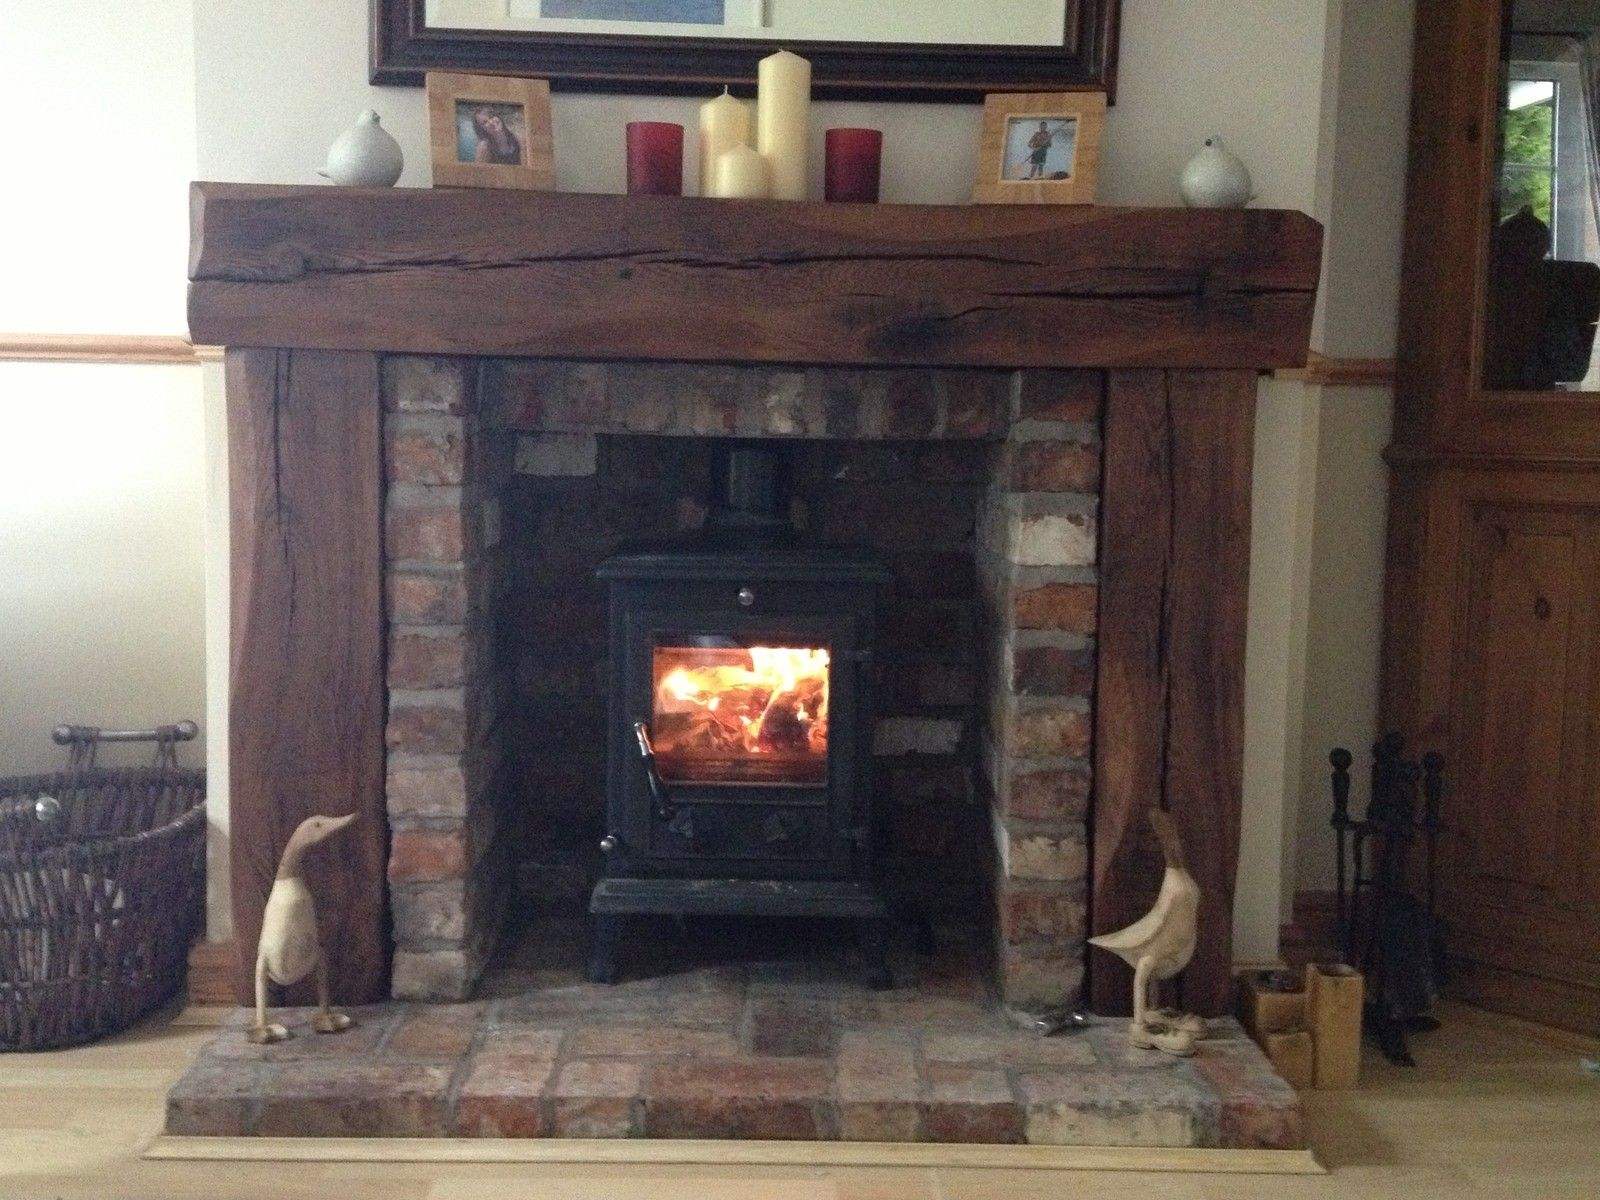 Uncategorized Rustic Fire Place solid aged french oak wood fireplace rustic fire surround place